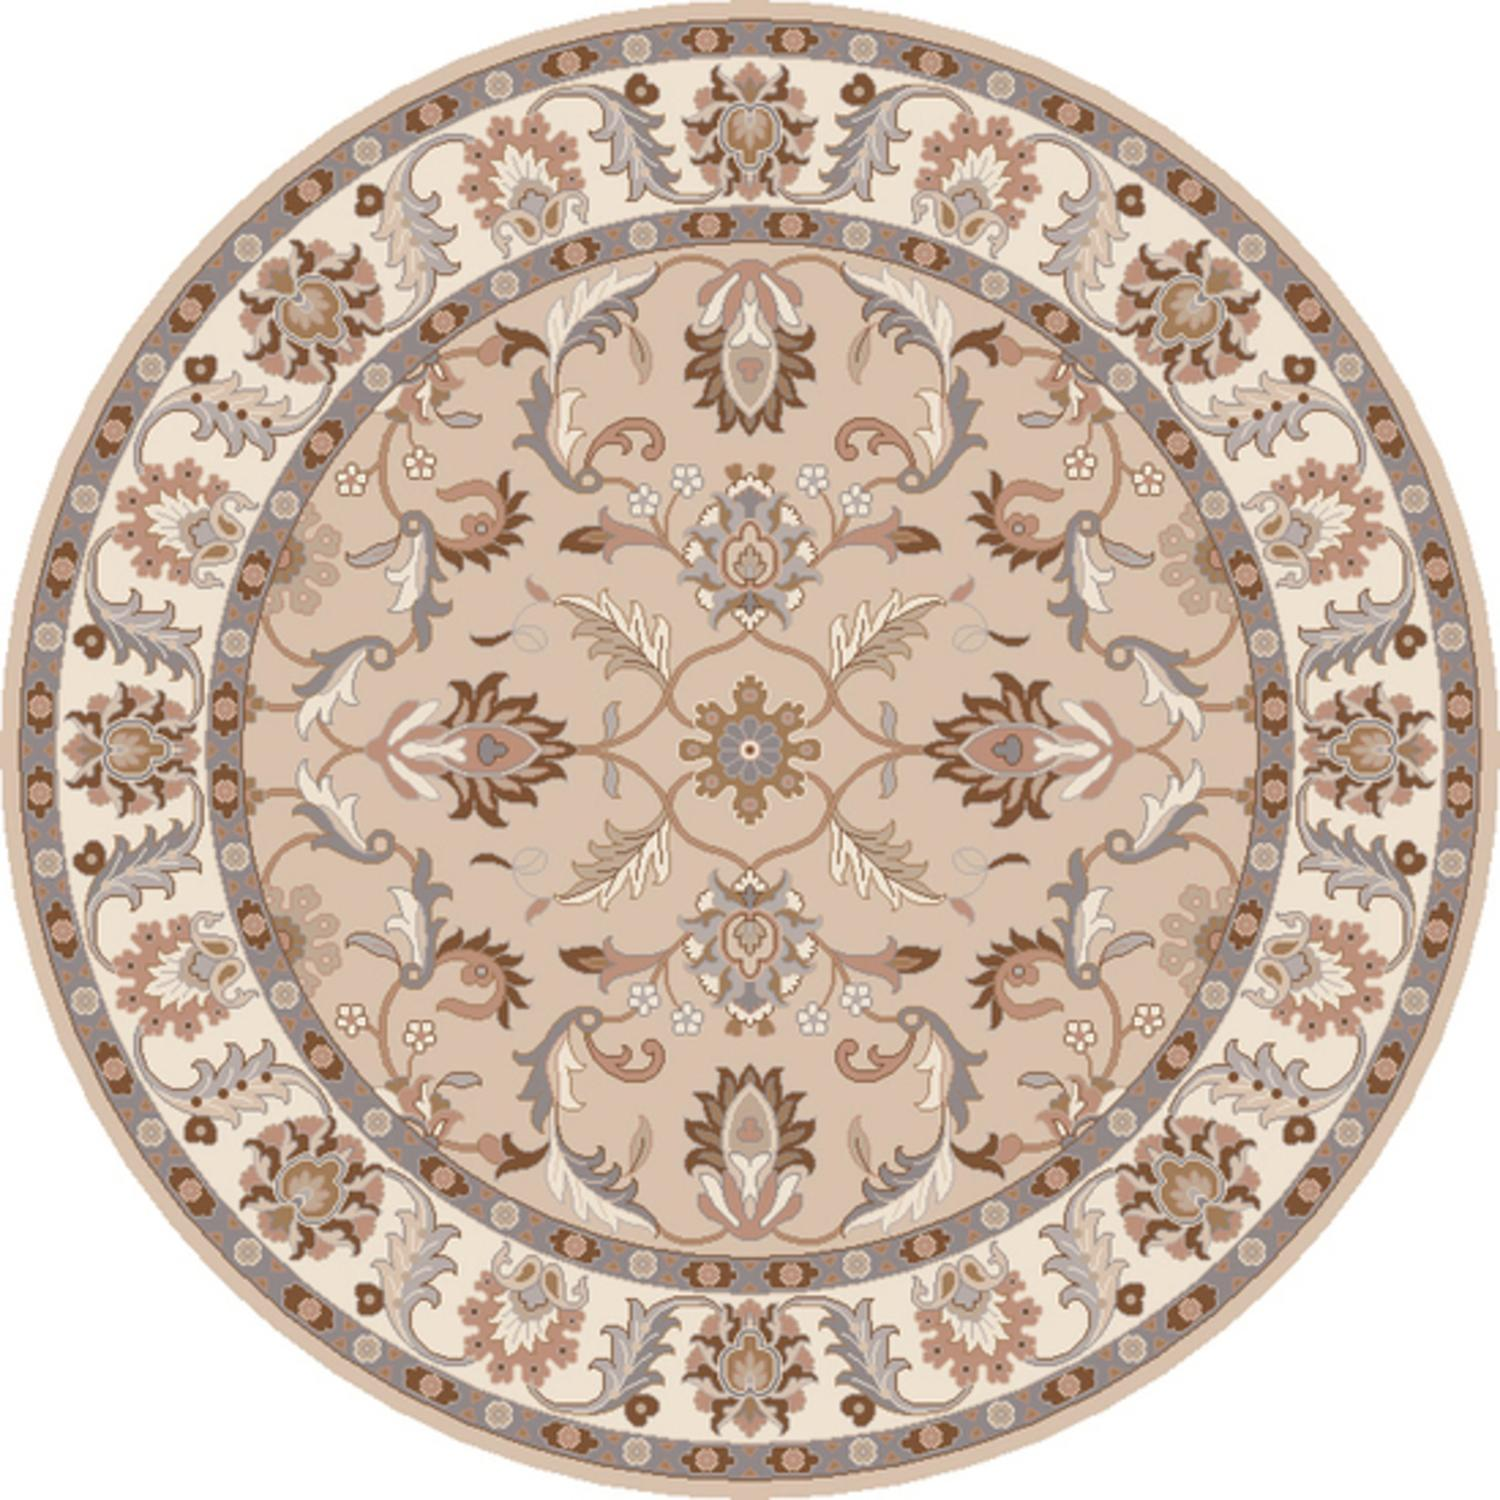 4' Publius Tan, Lavender Gray and White Hand Tufted Round Wool Area Throw Rug